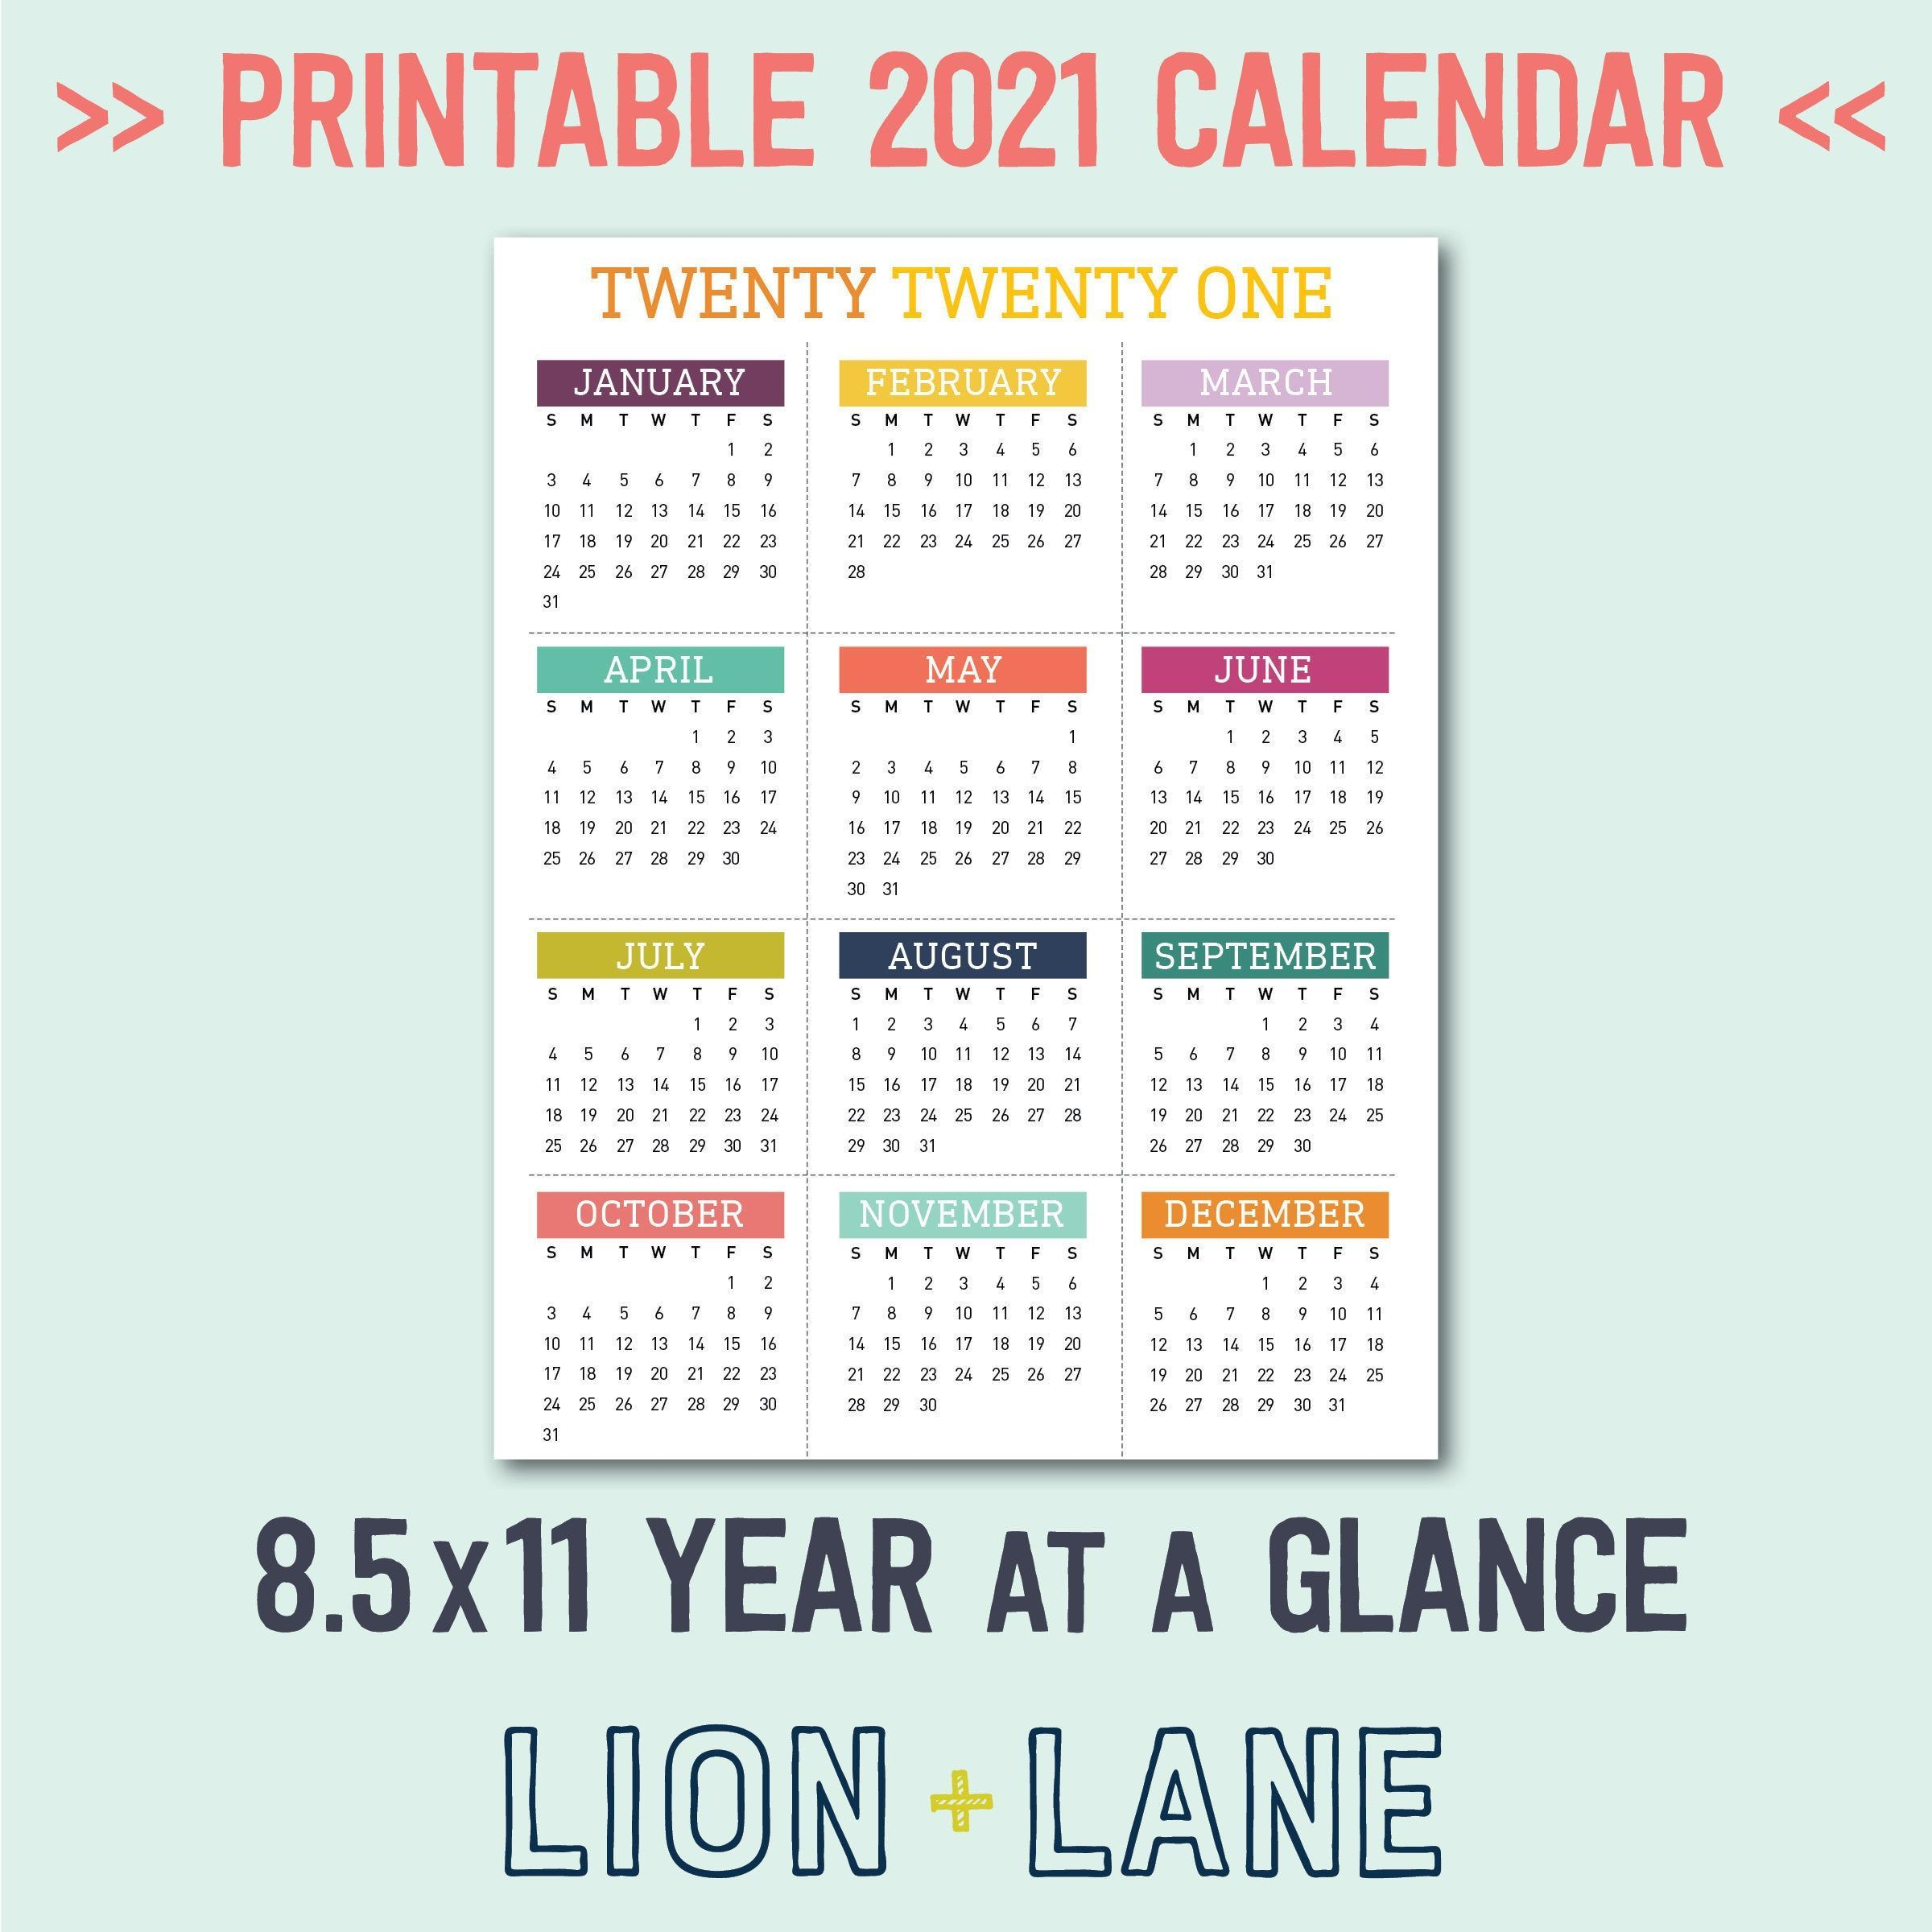 2021 Printable Calendar Year At A Glance 8 5x11 Letter Regarding Saturday Calendar 2021 In 2021 Printable Yearly Calendar Calendar Printables 2021 Calendar